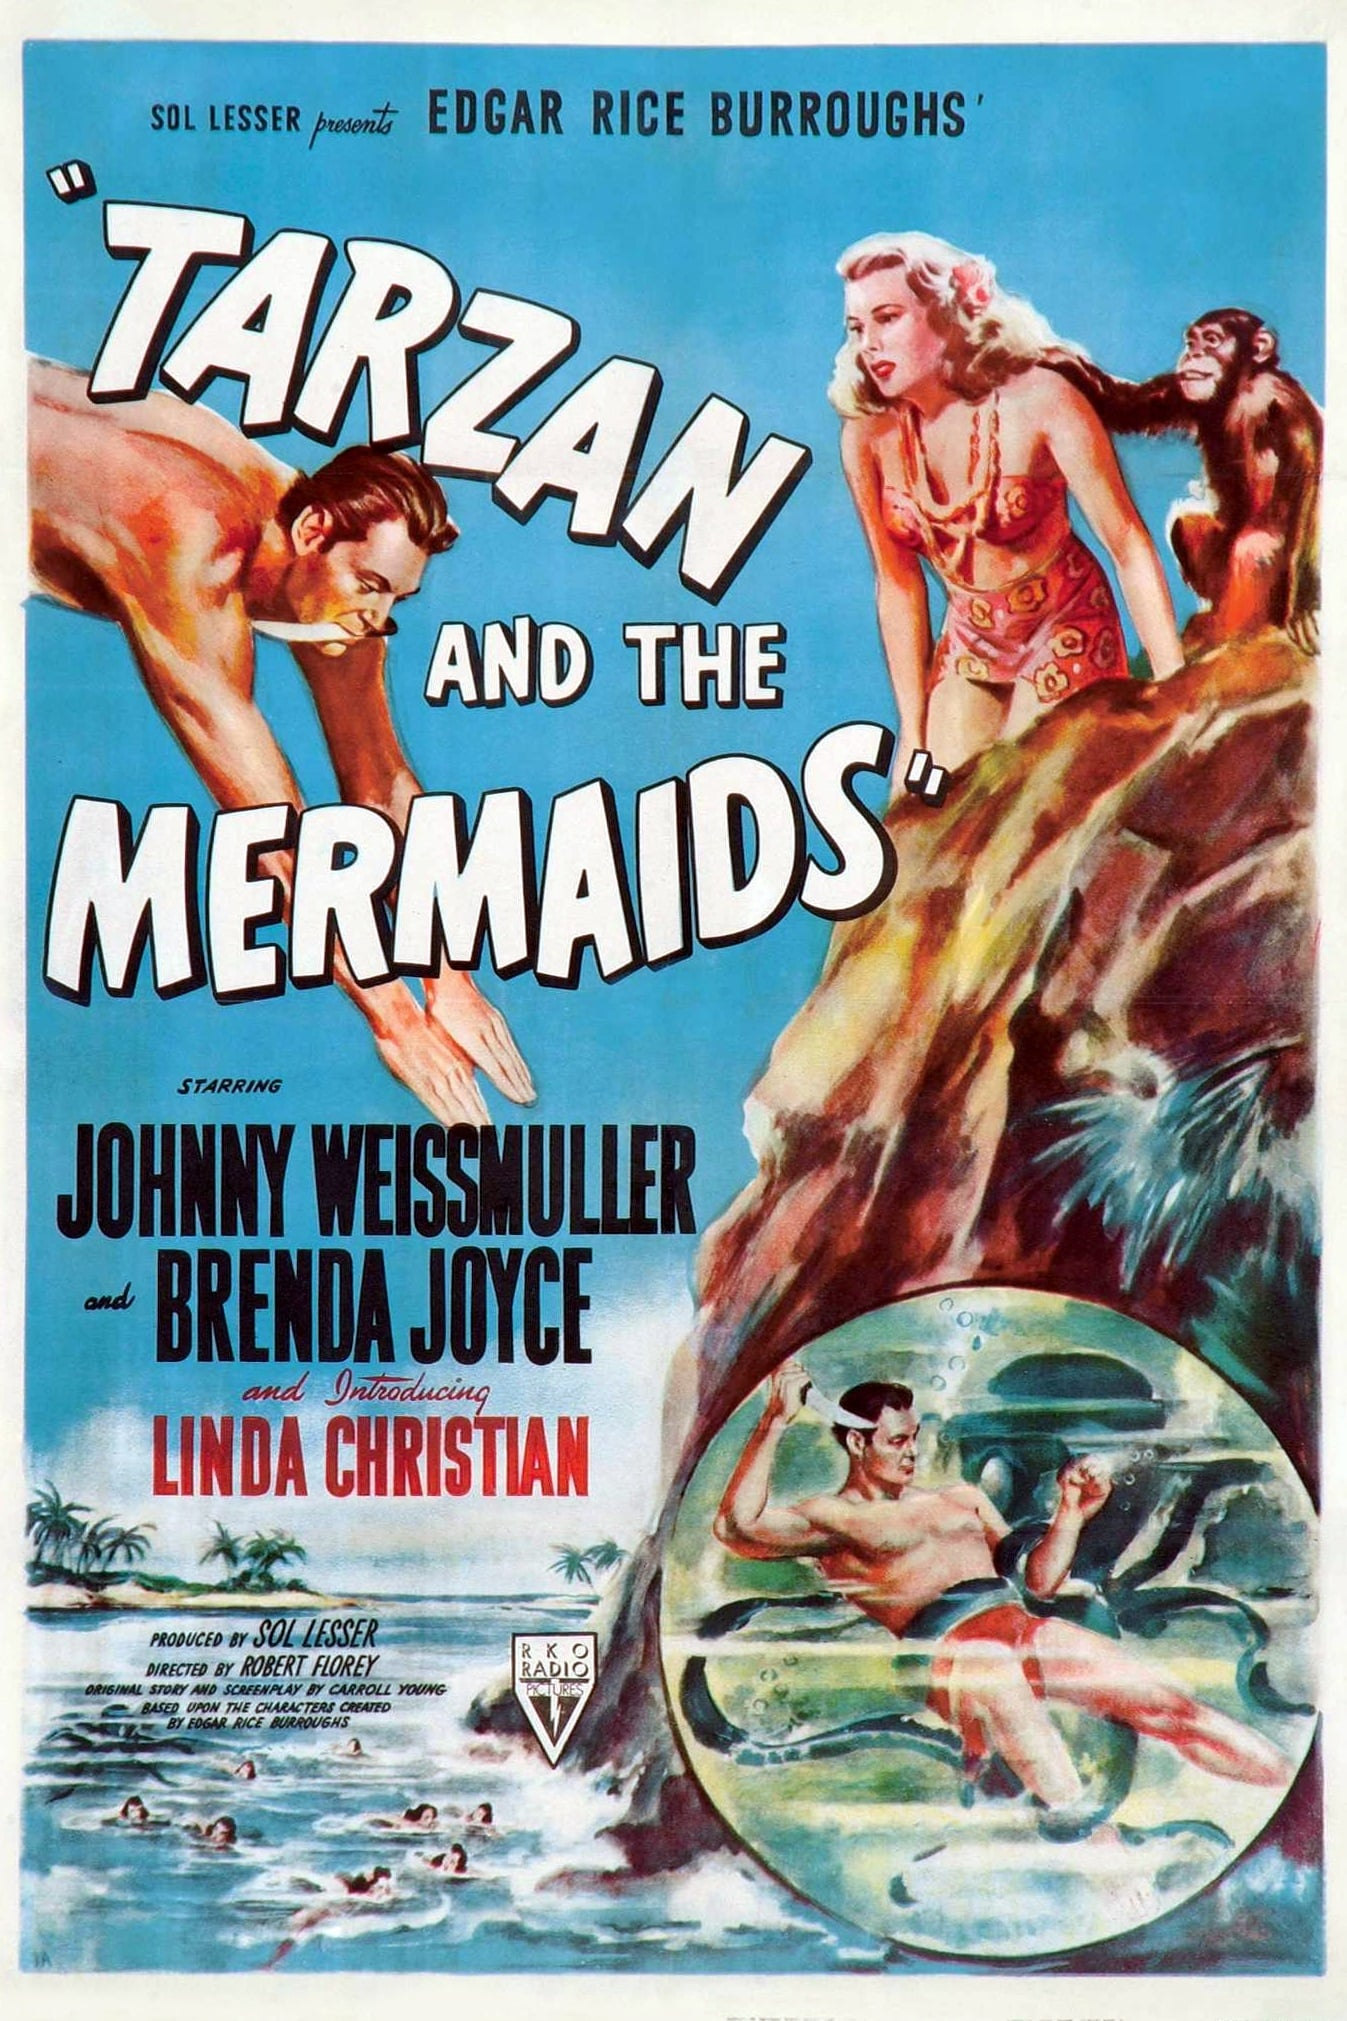 Tarzan and the Mermaids (1948)